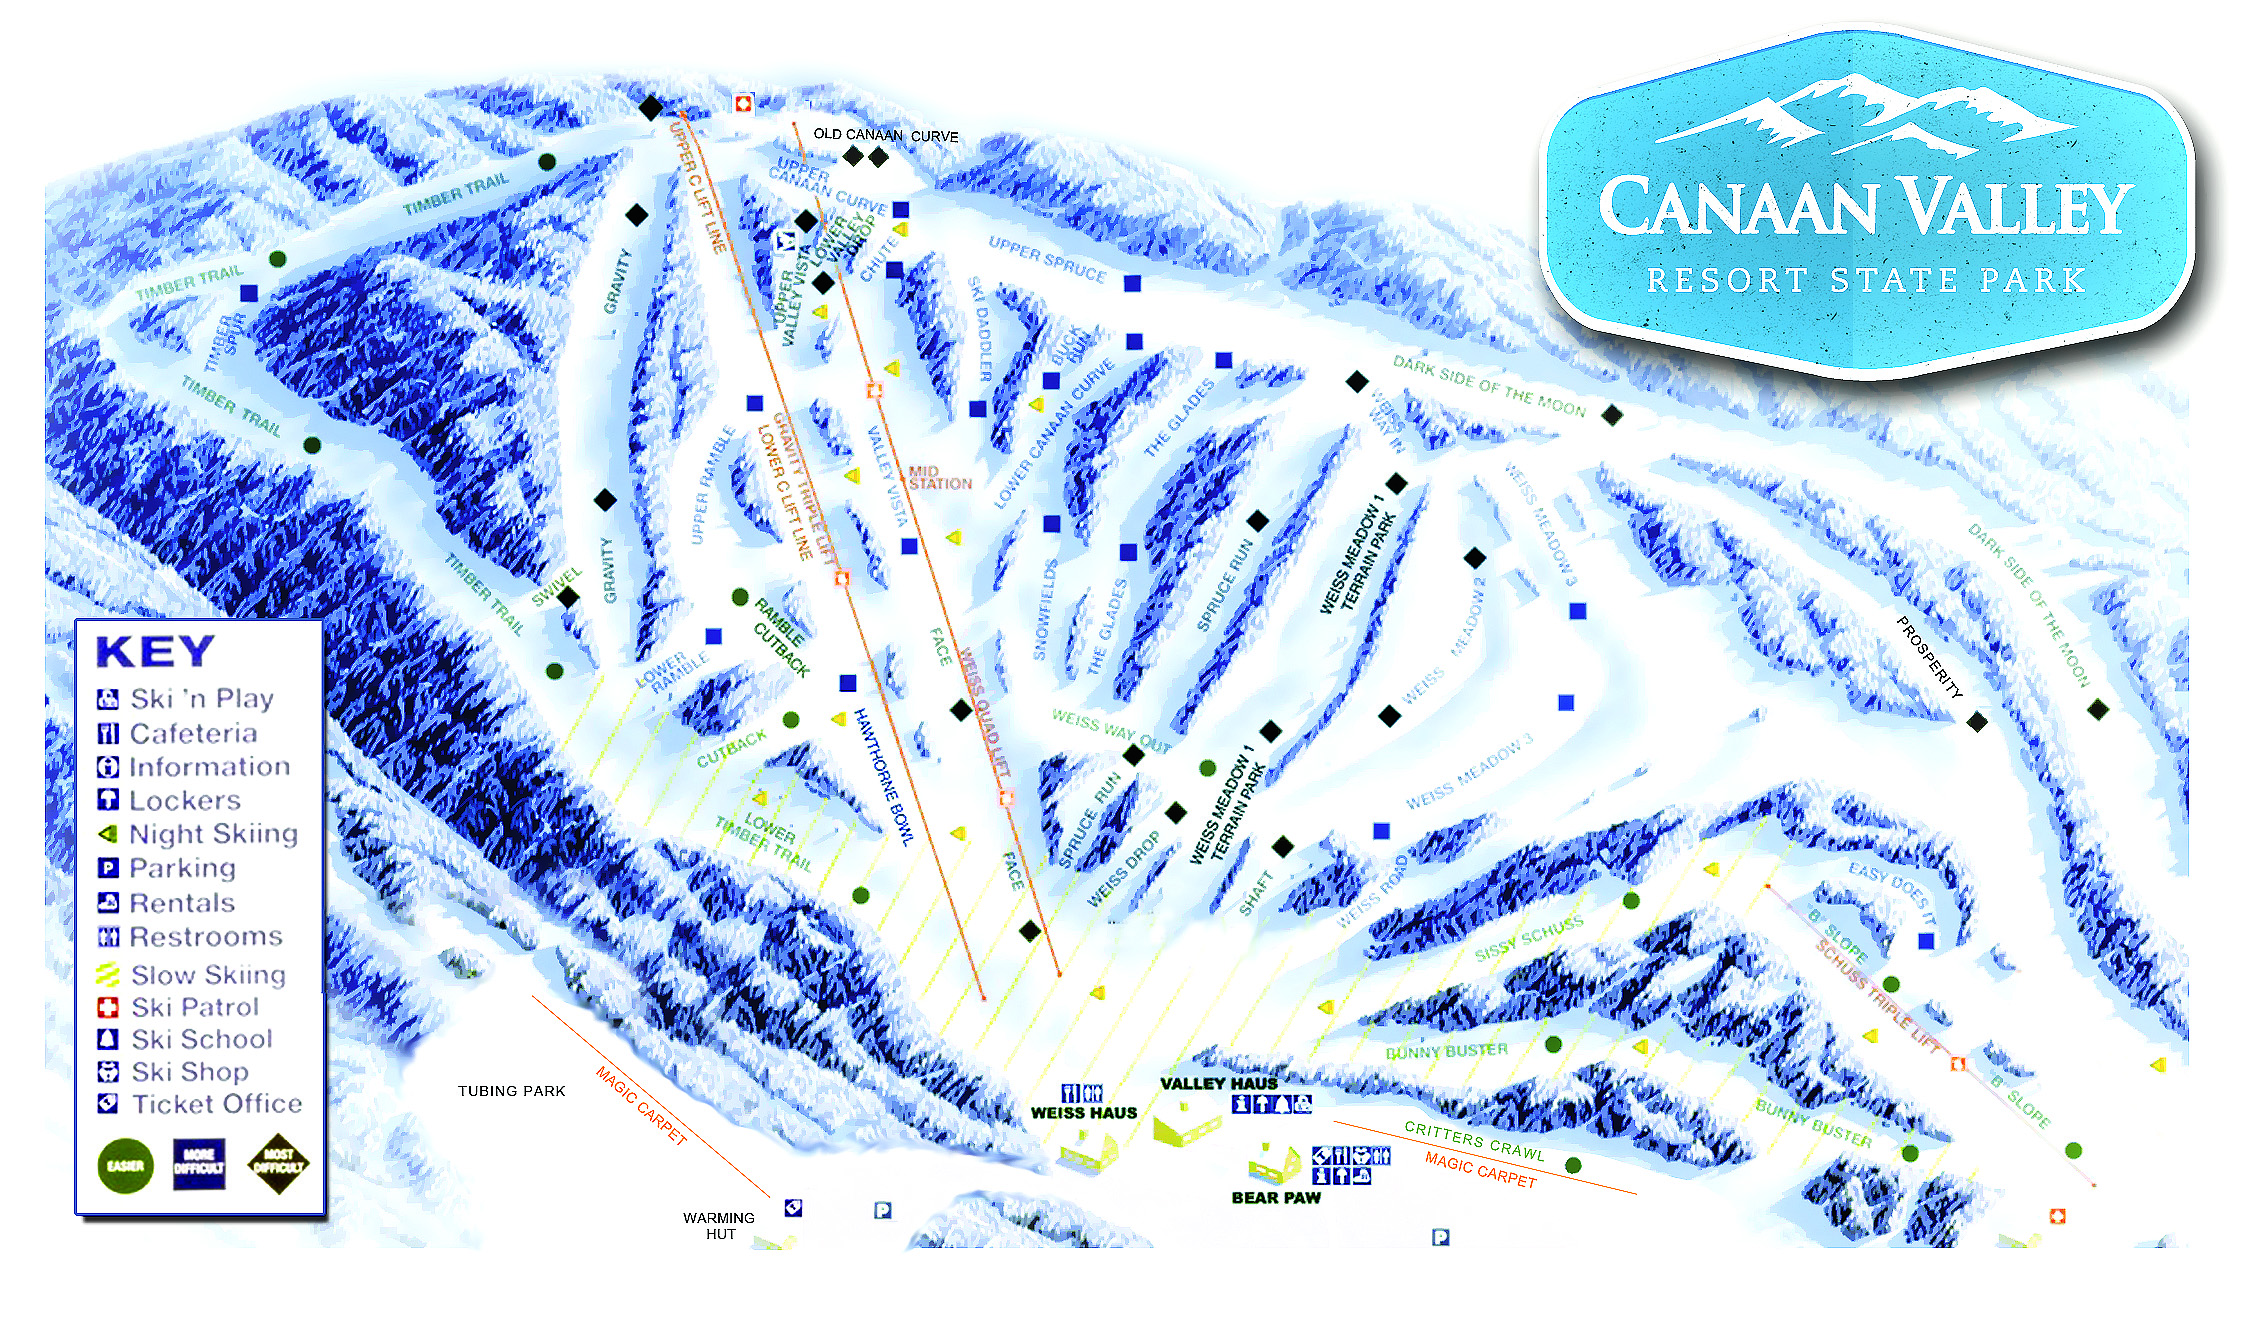 Canaan Valley Resort SkiMaporg